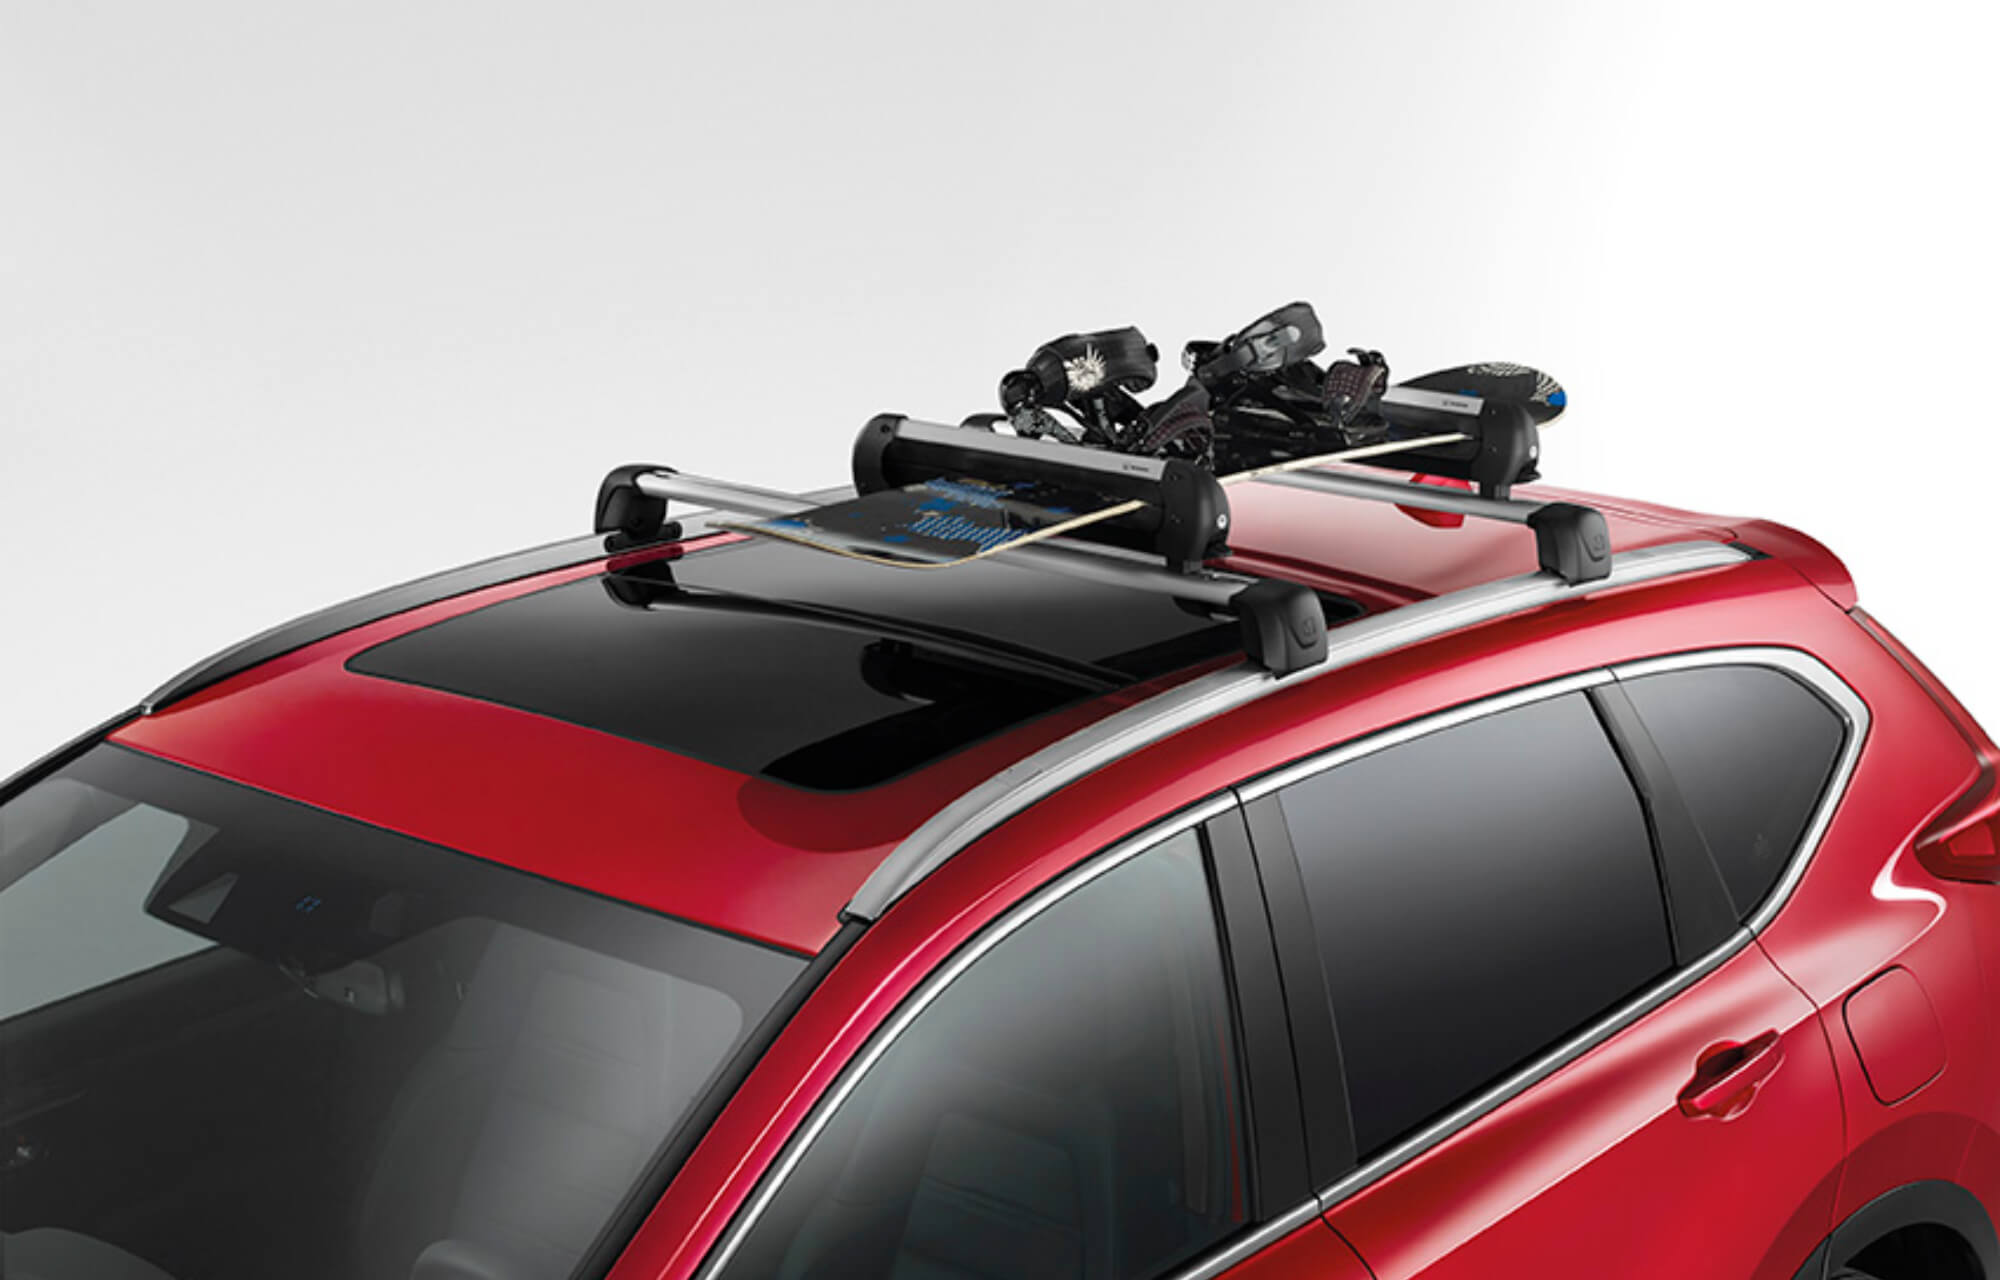 CR-V Ski and Snowboard Rack